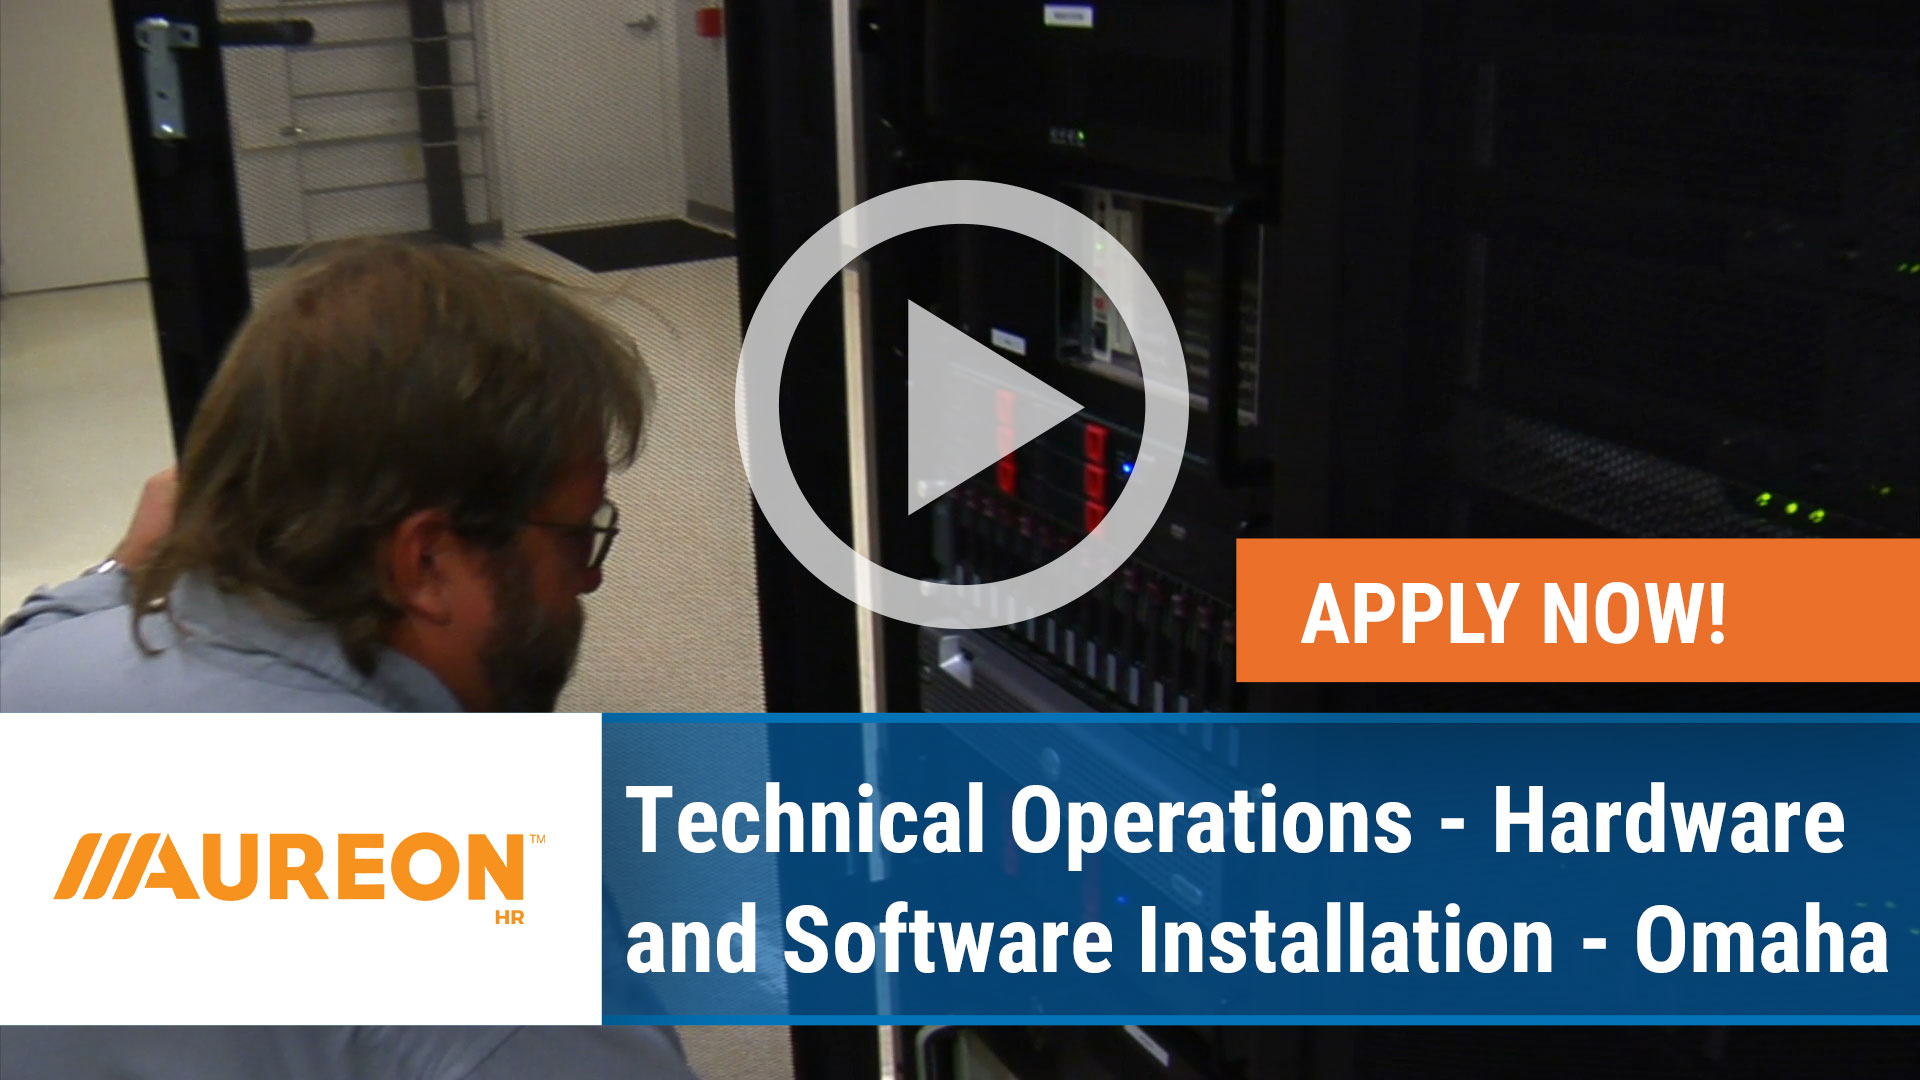 Watch our careers video for available job opening Technical Operations - Hardware and Software Installation - Omaha in Omaha, NE